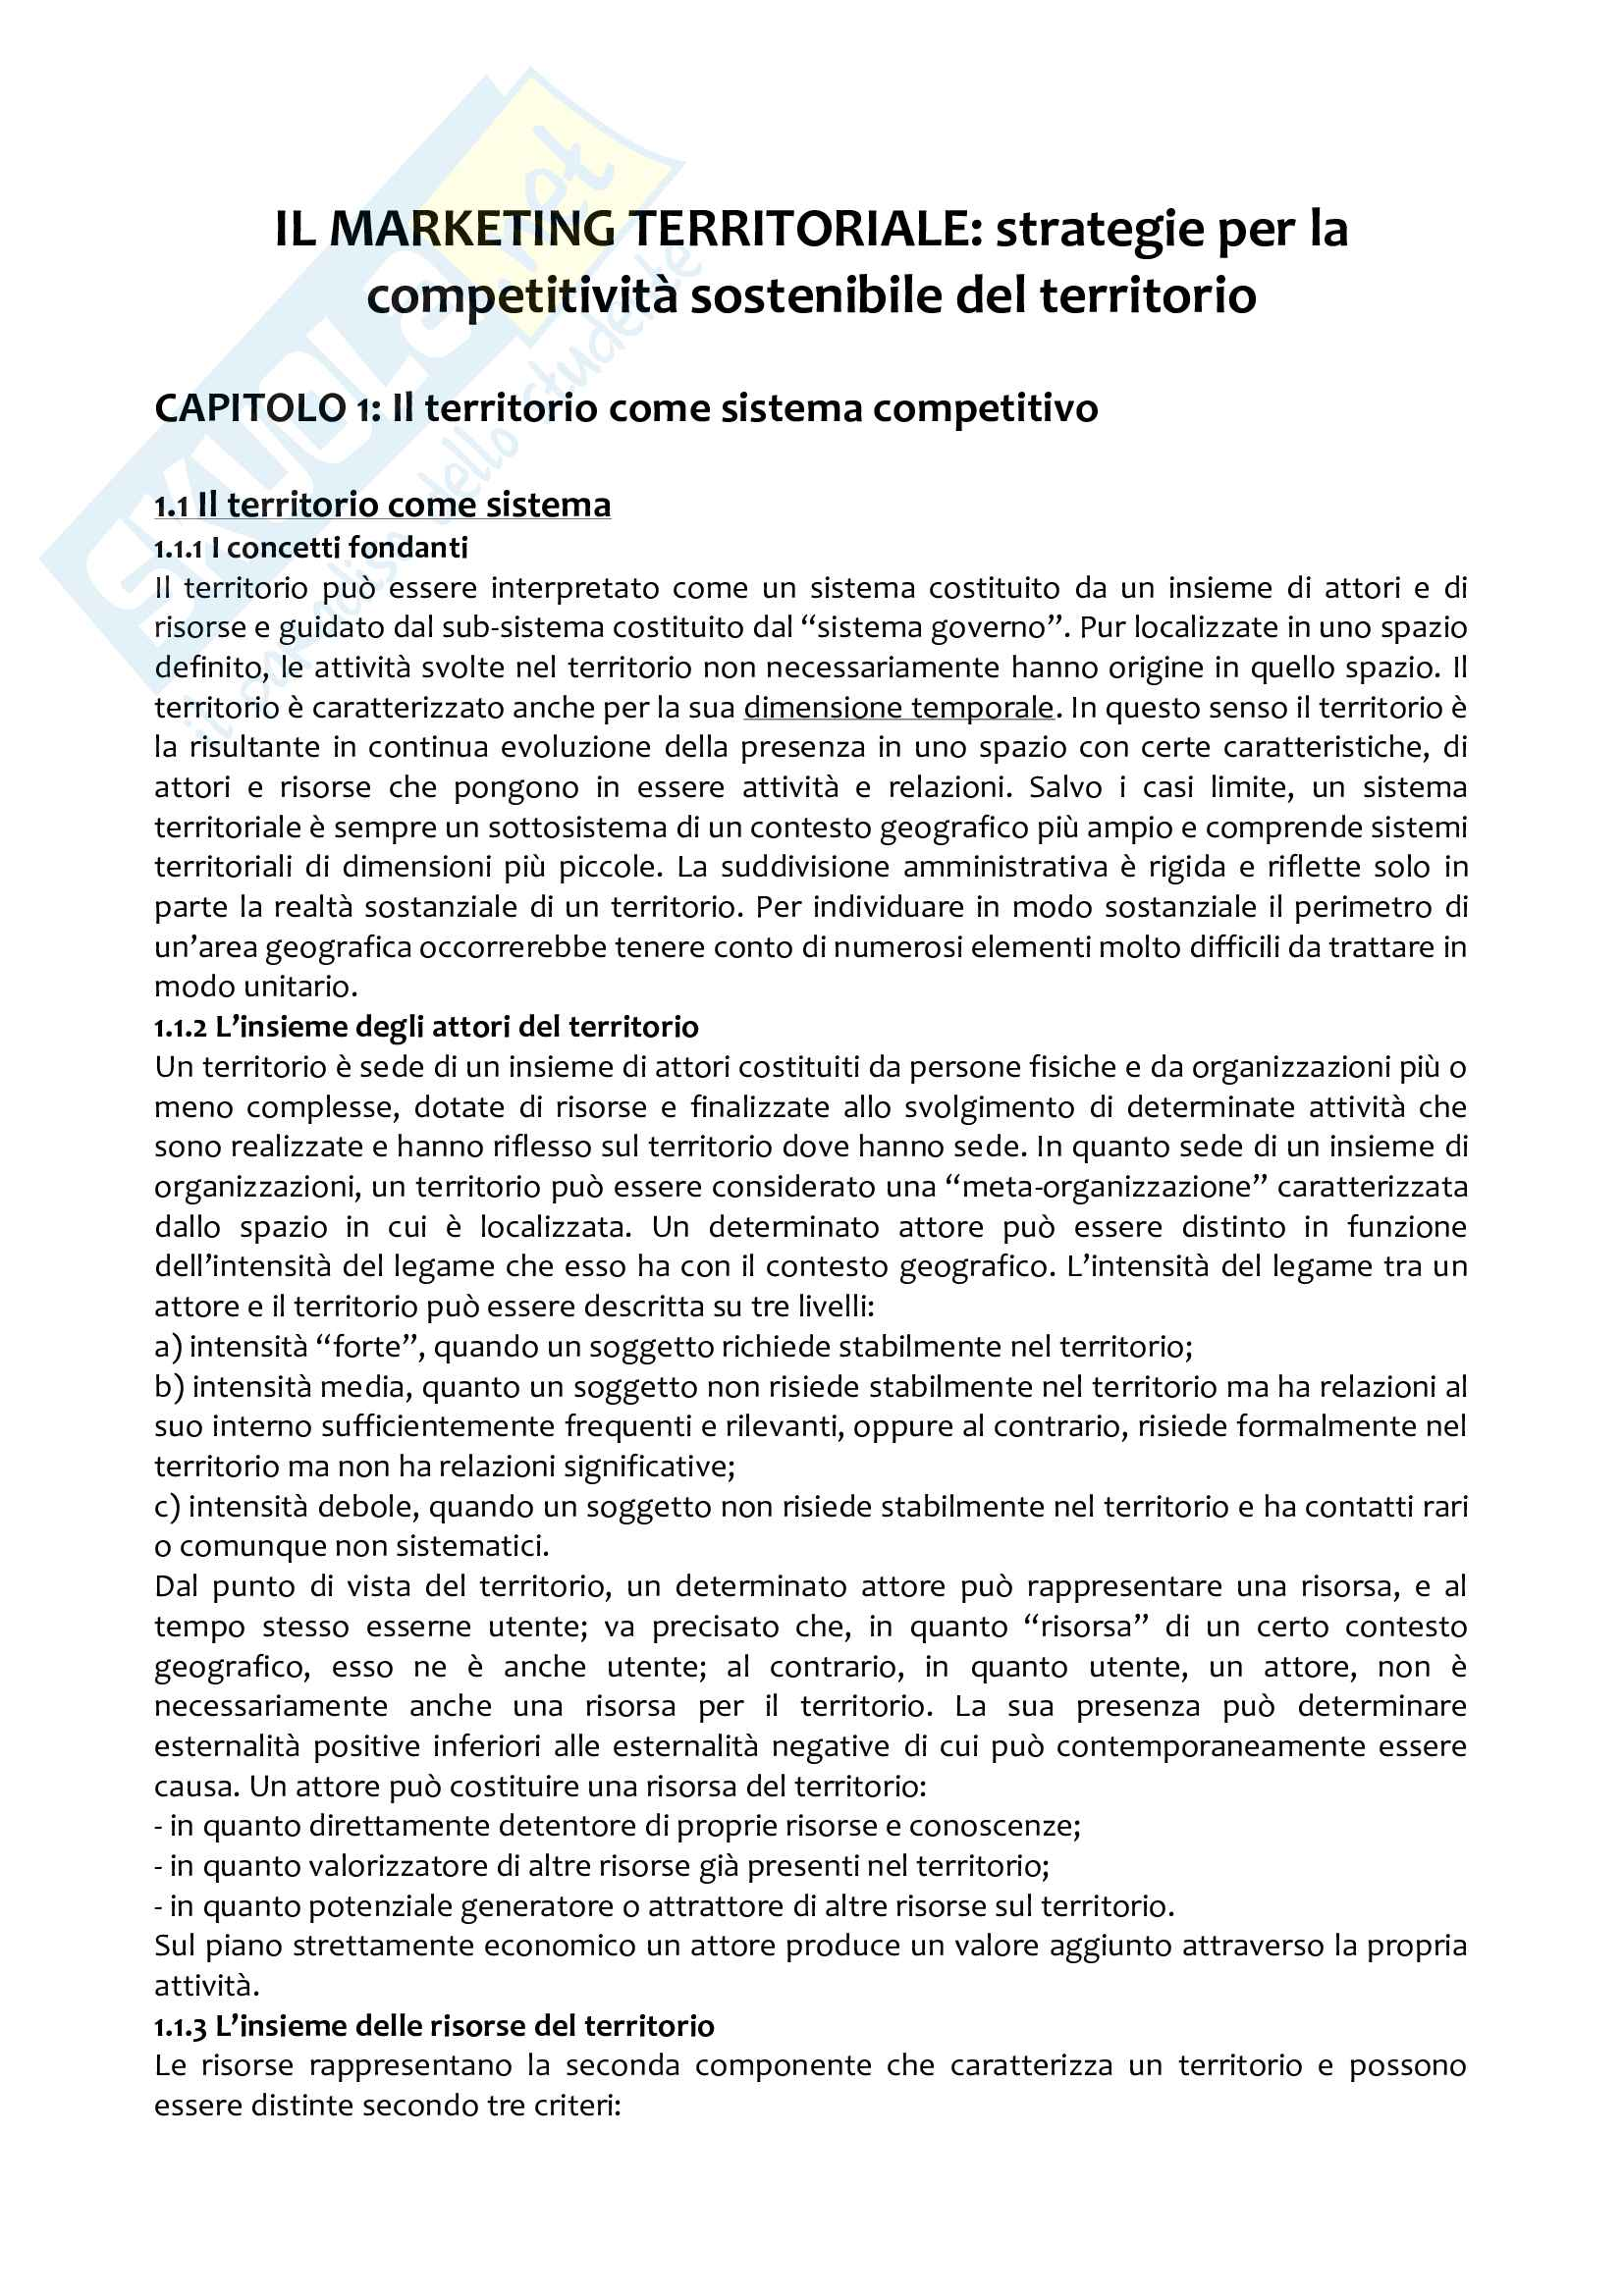 Riassunto esame marketing territoriale, docente Guido, libro consigliato Il marketing territoriale, Caroli